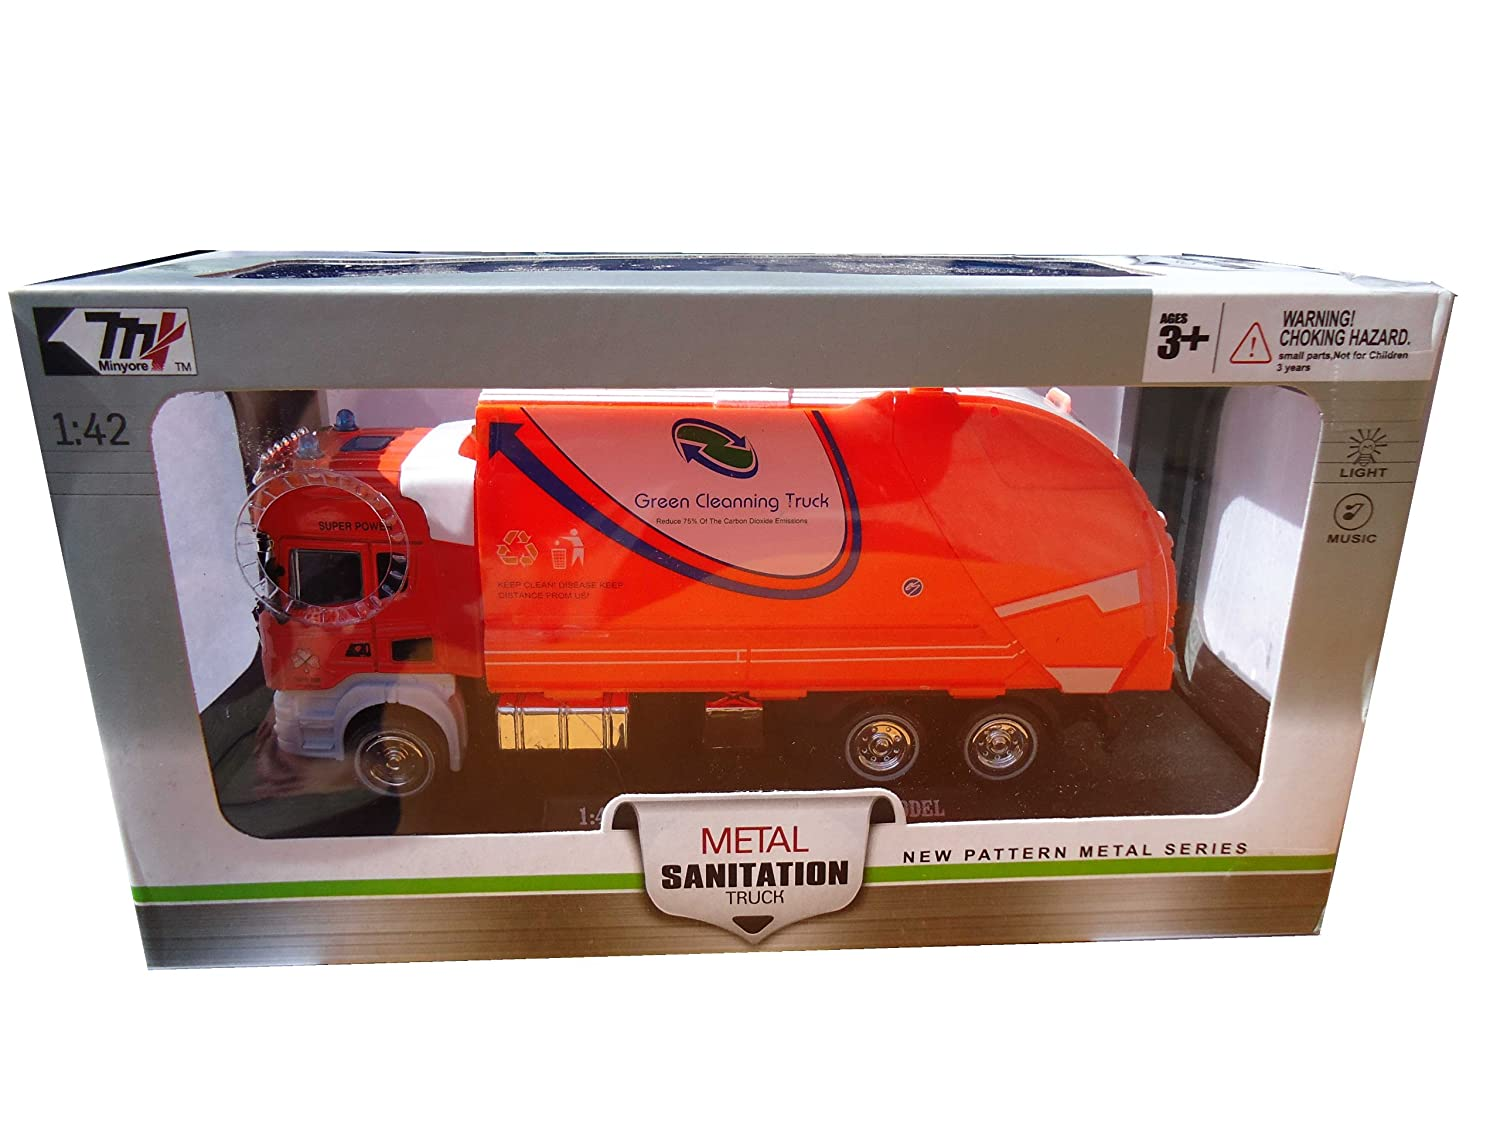 Garbage Truck with Light and Sound Scale 1:42 Metal Sanitation Truck anek